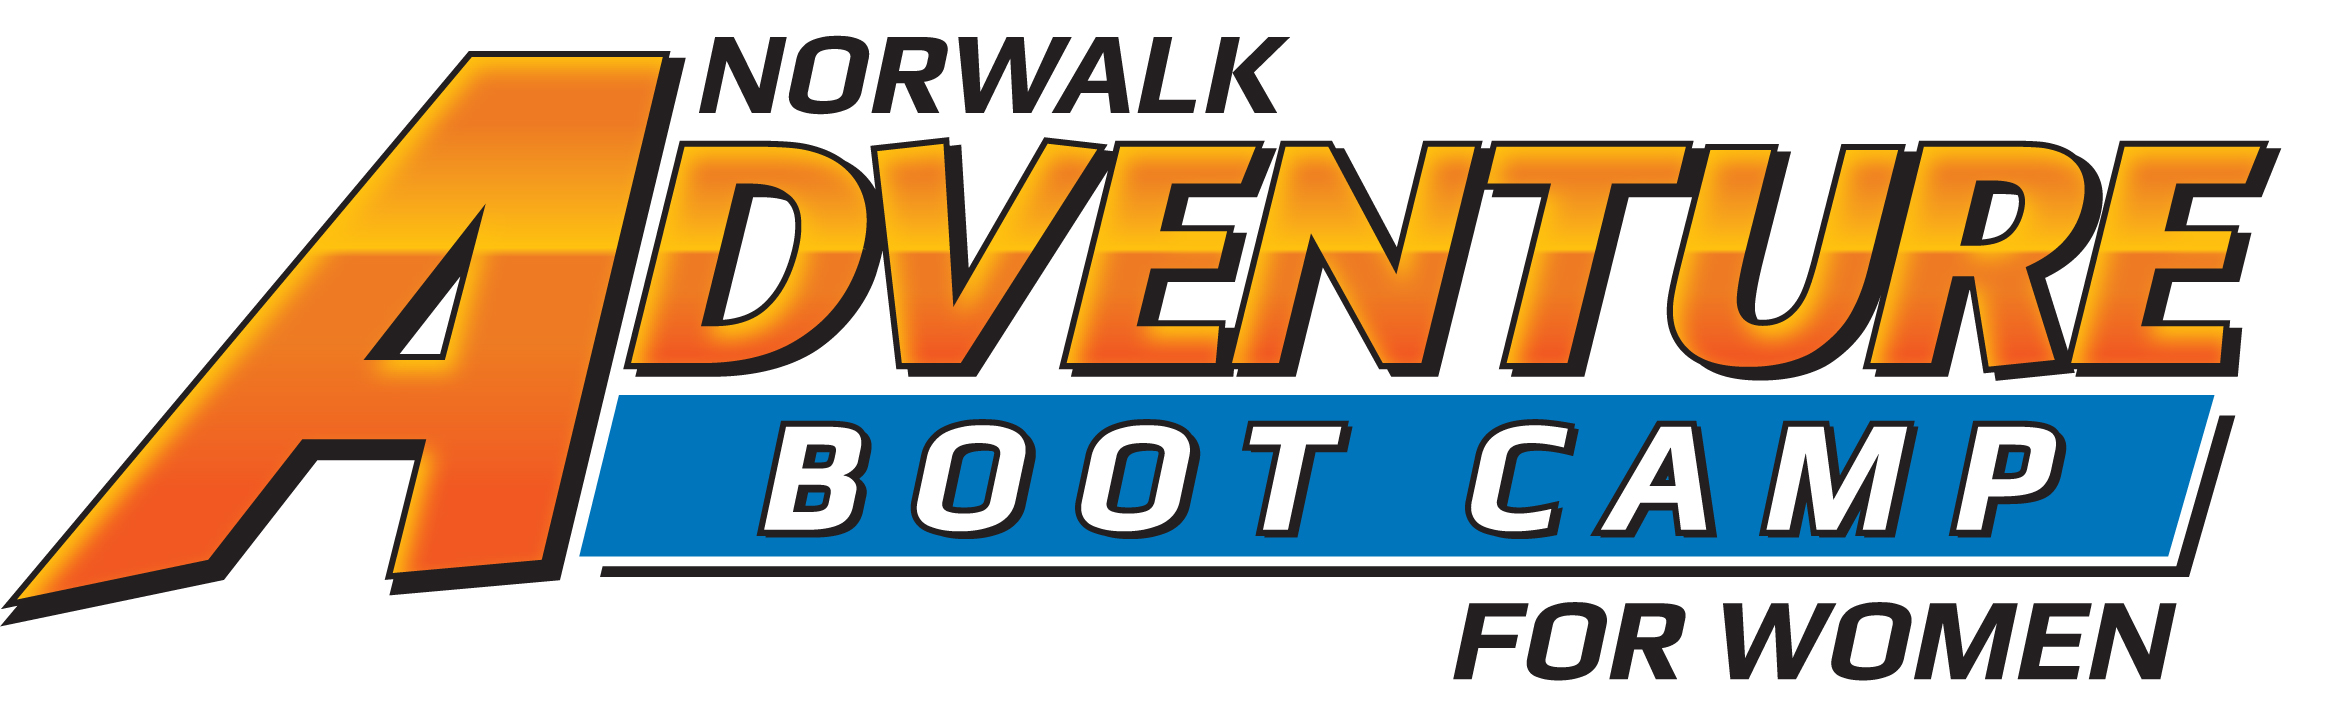 Norwalk Adventure Boot Camp For Women